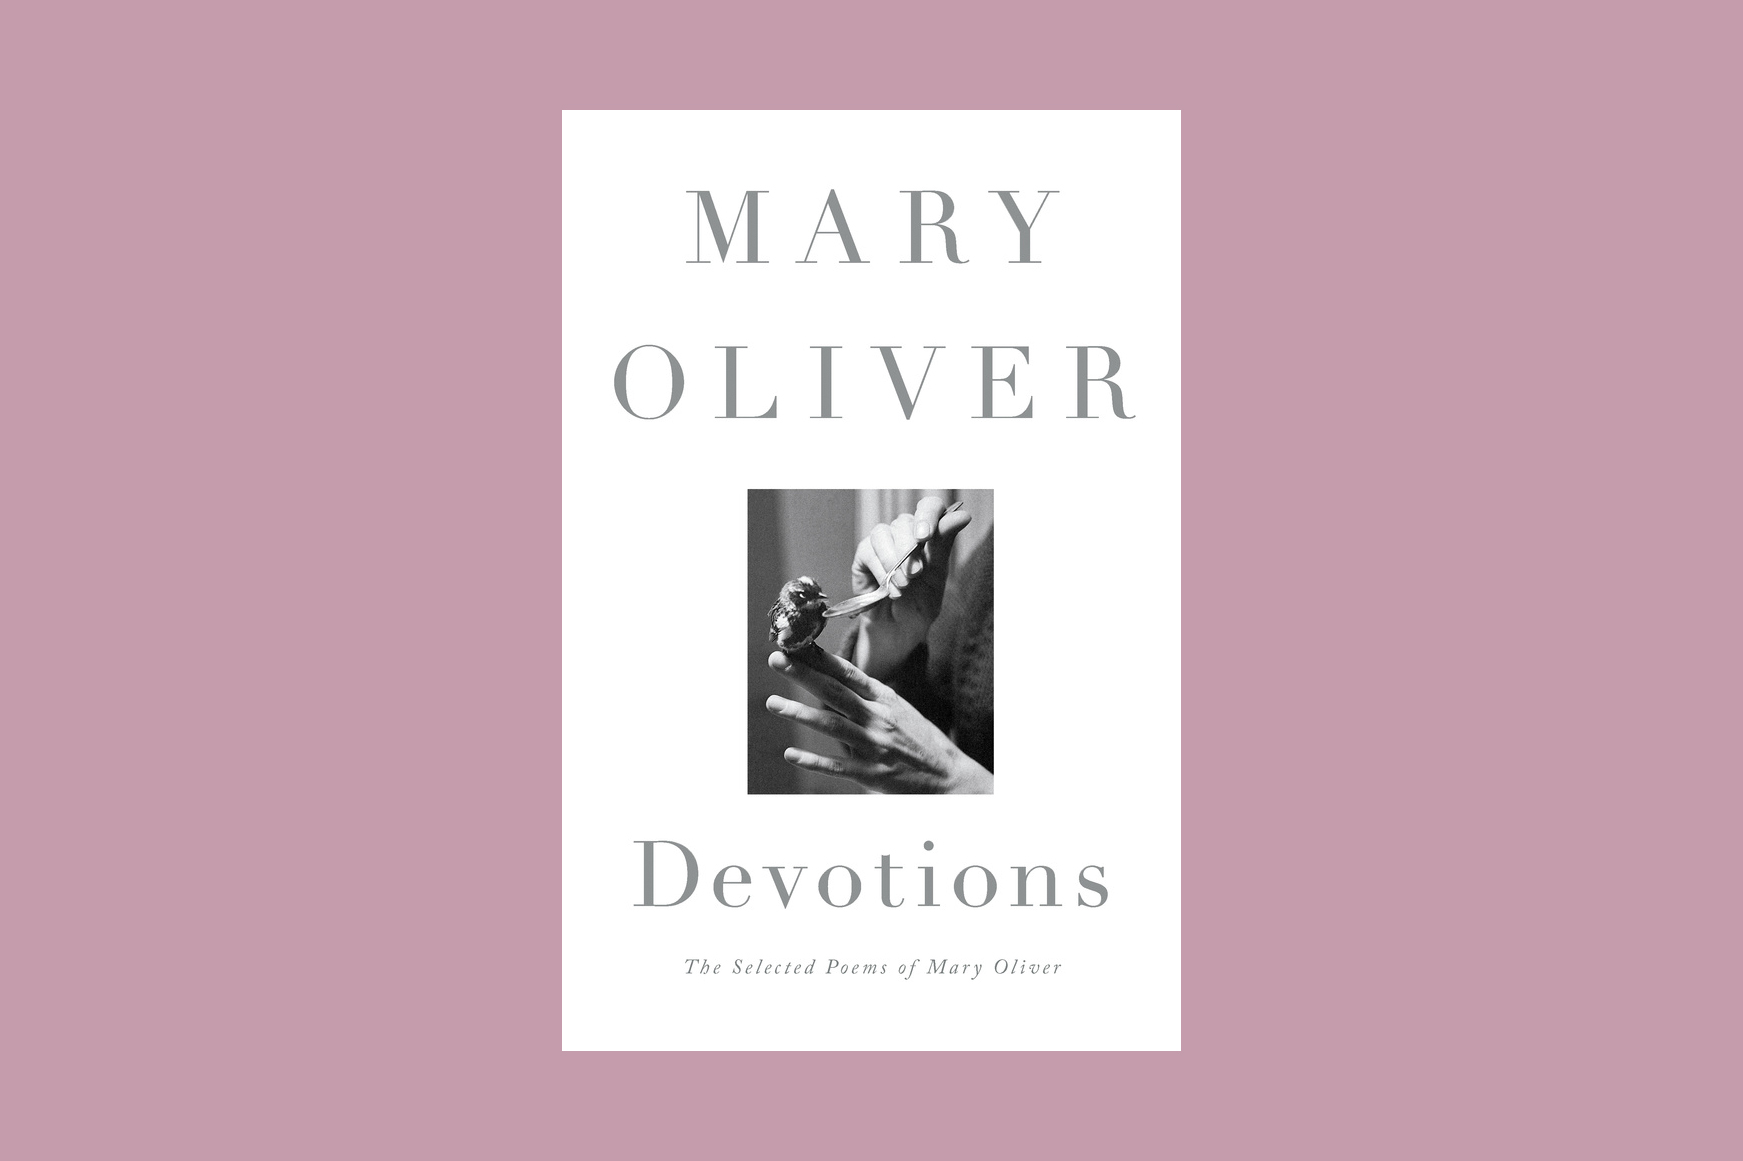 Devotions by Mary Oliver